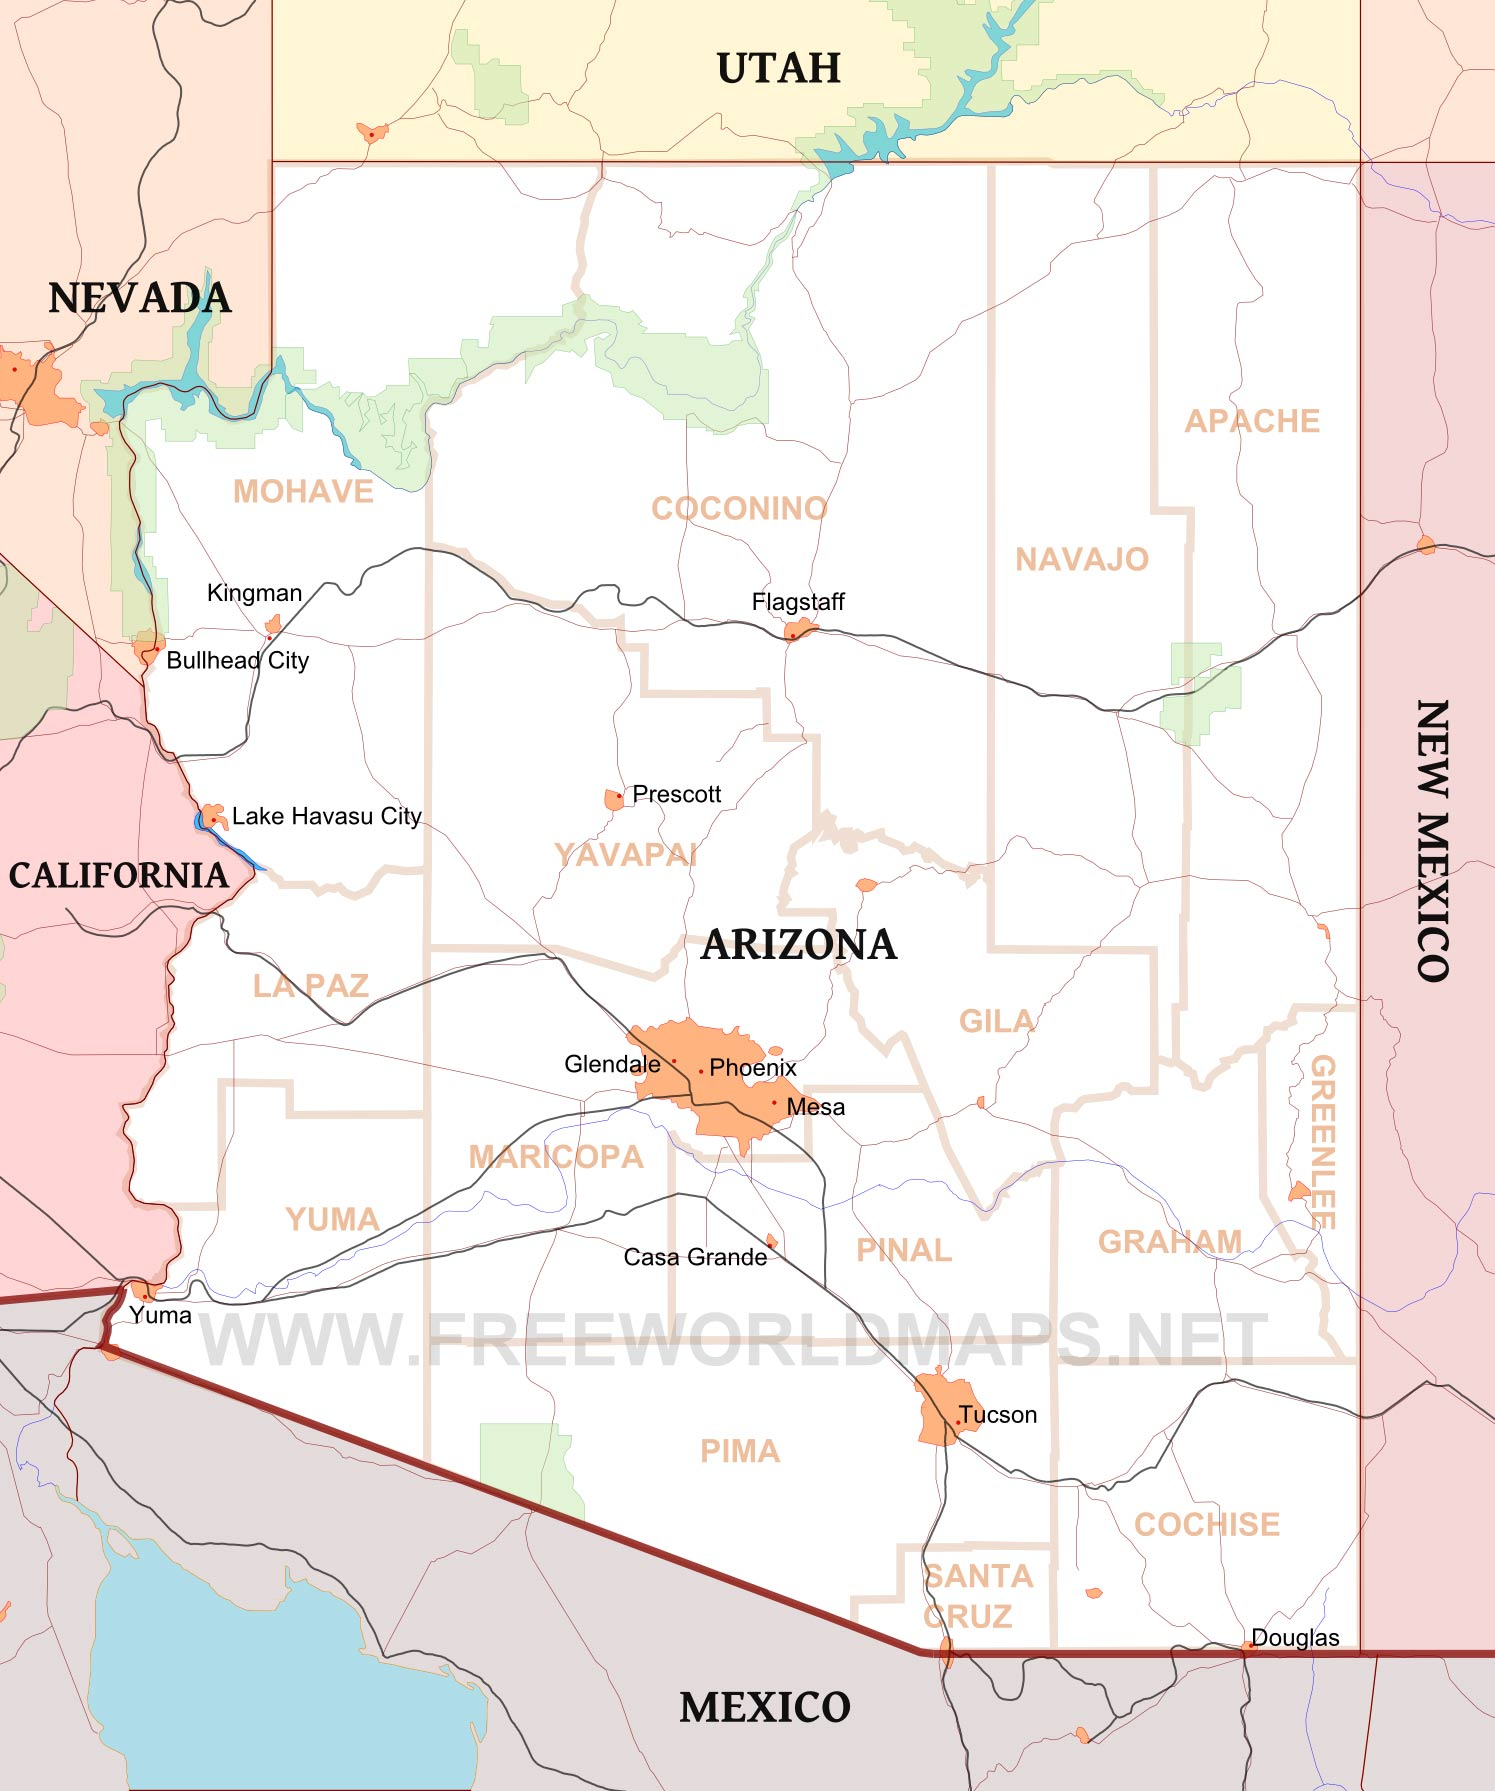 Arizona Maps - Mapof arizona